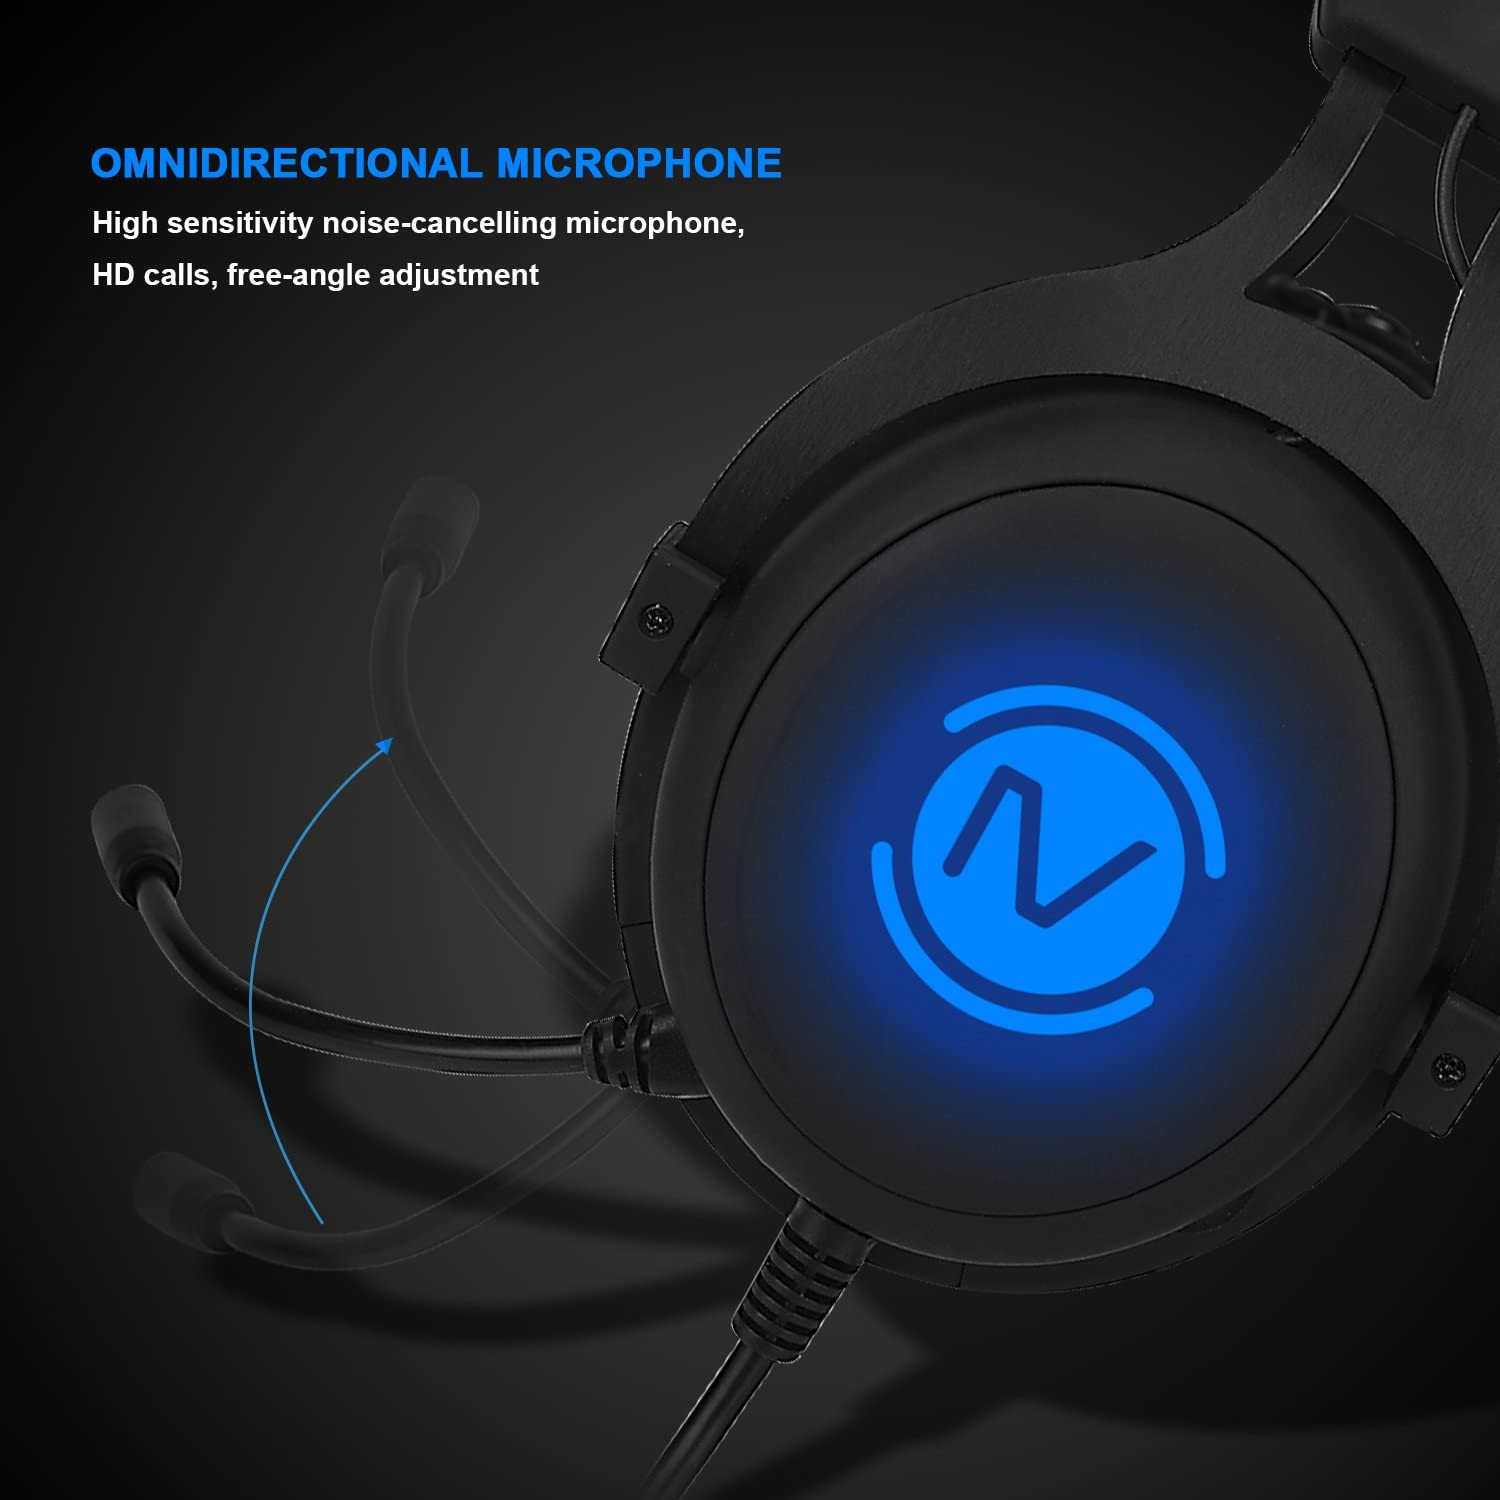 7.1 Headset OIVO 7.1 Gaming Headset Virtual Surround Sound for PC USB Computer Headset Noise Cancelling Over Ear Headphones with Microphone for Laptop Gamer